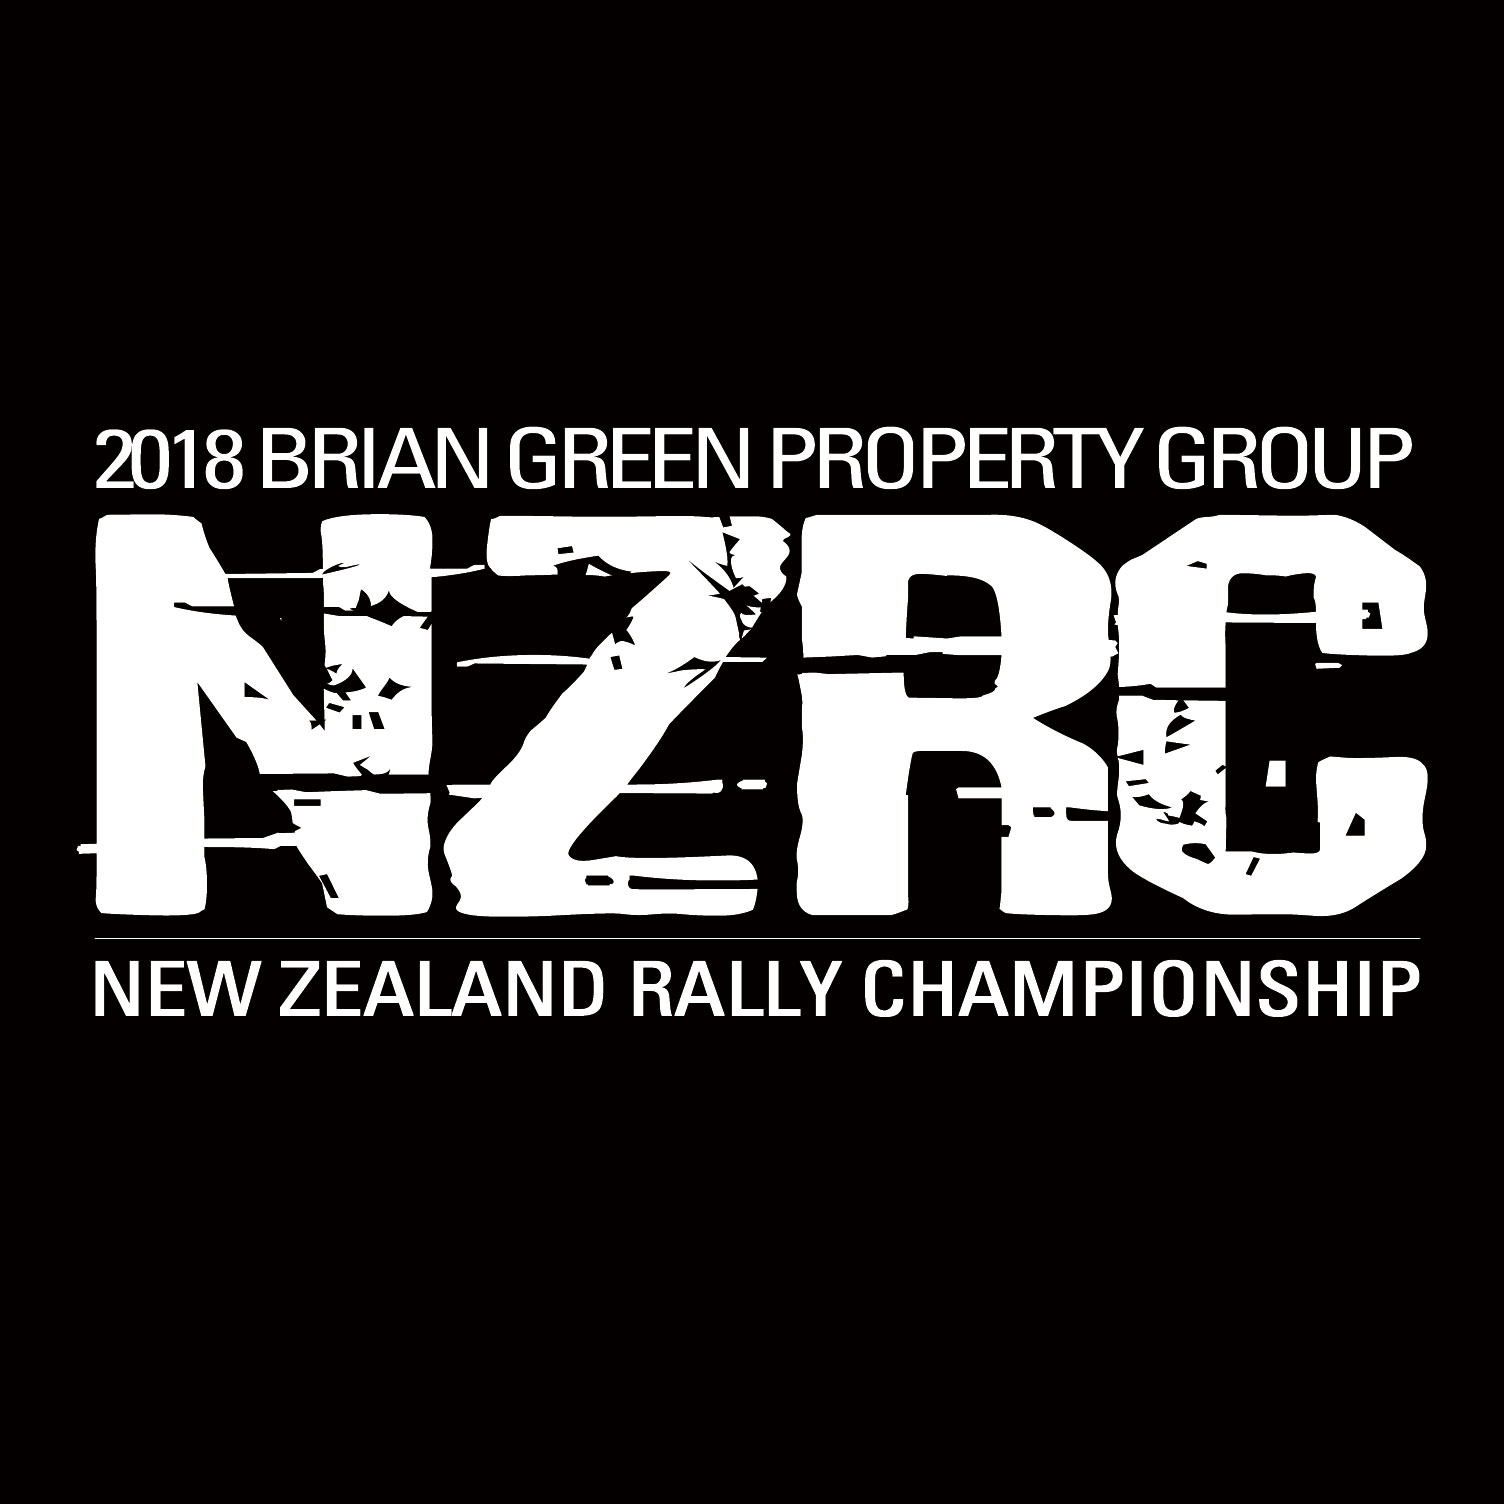 Volunteering | :: Brian Green Property Group New Zealand Rally Championship ::